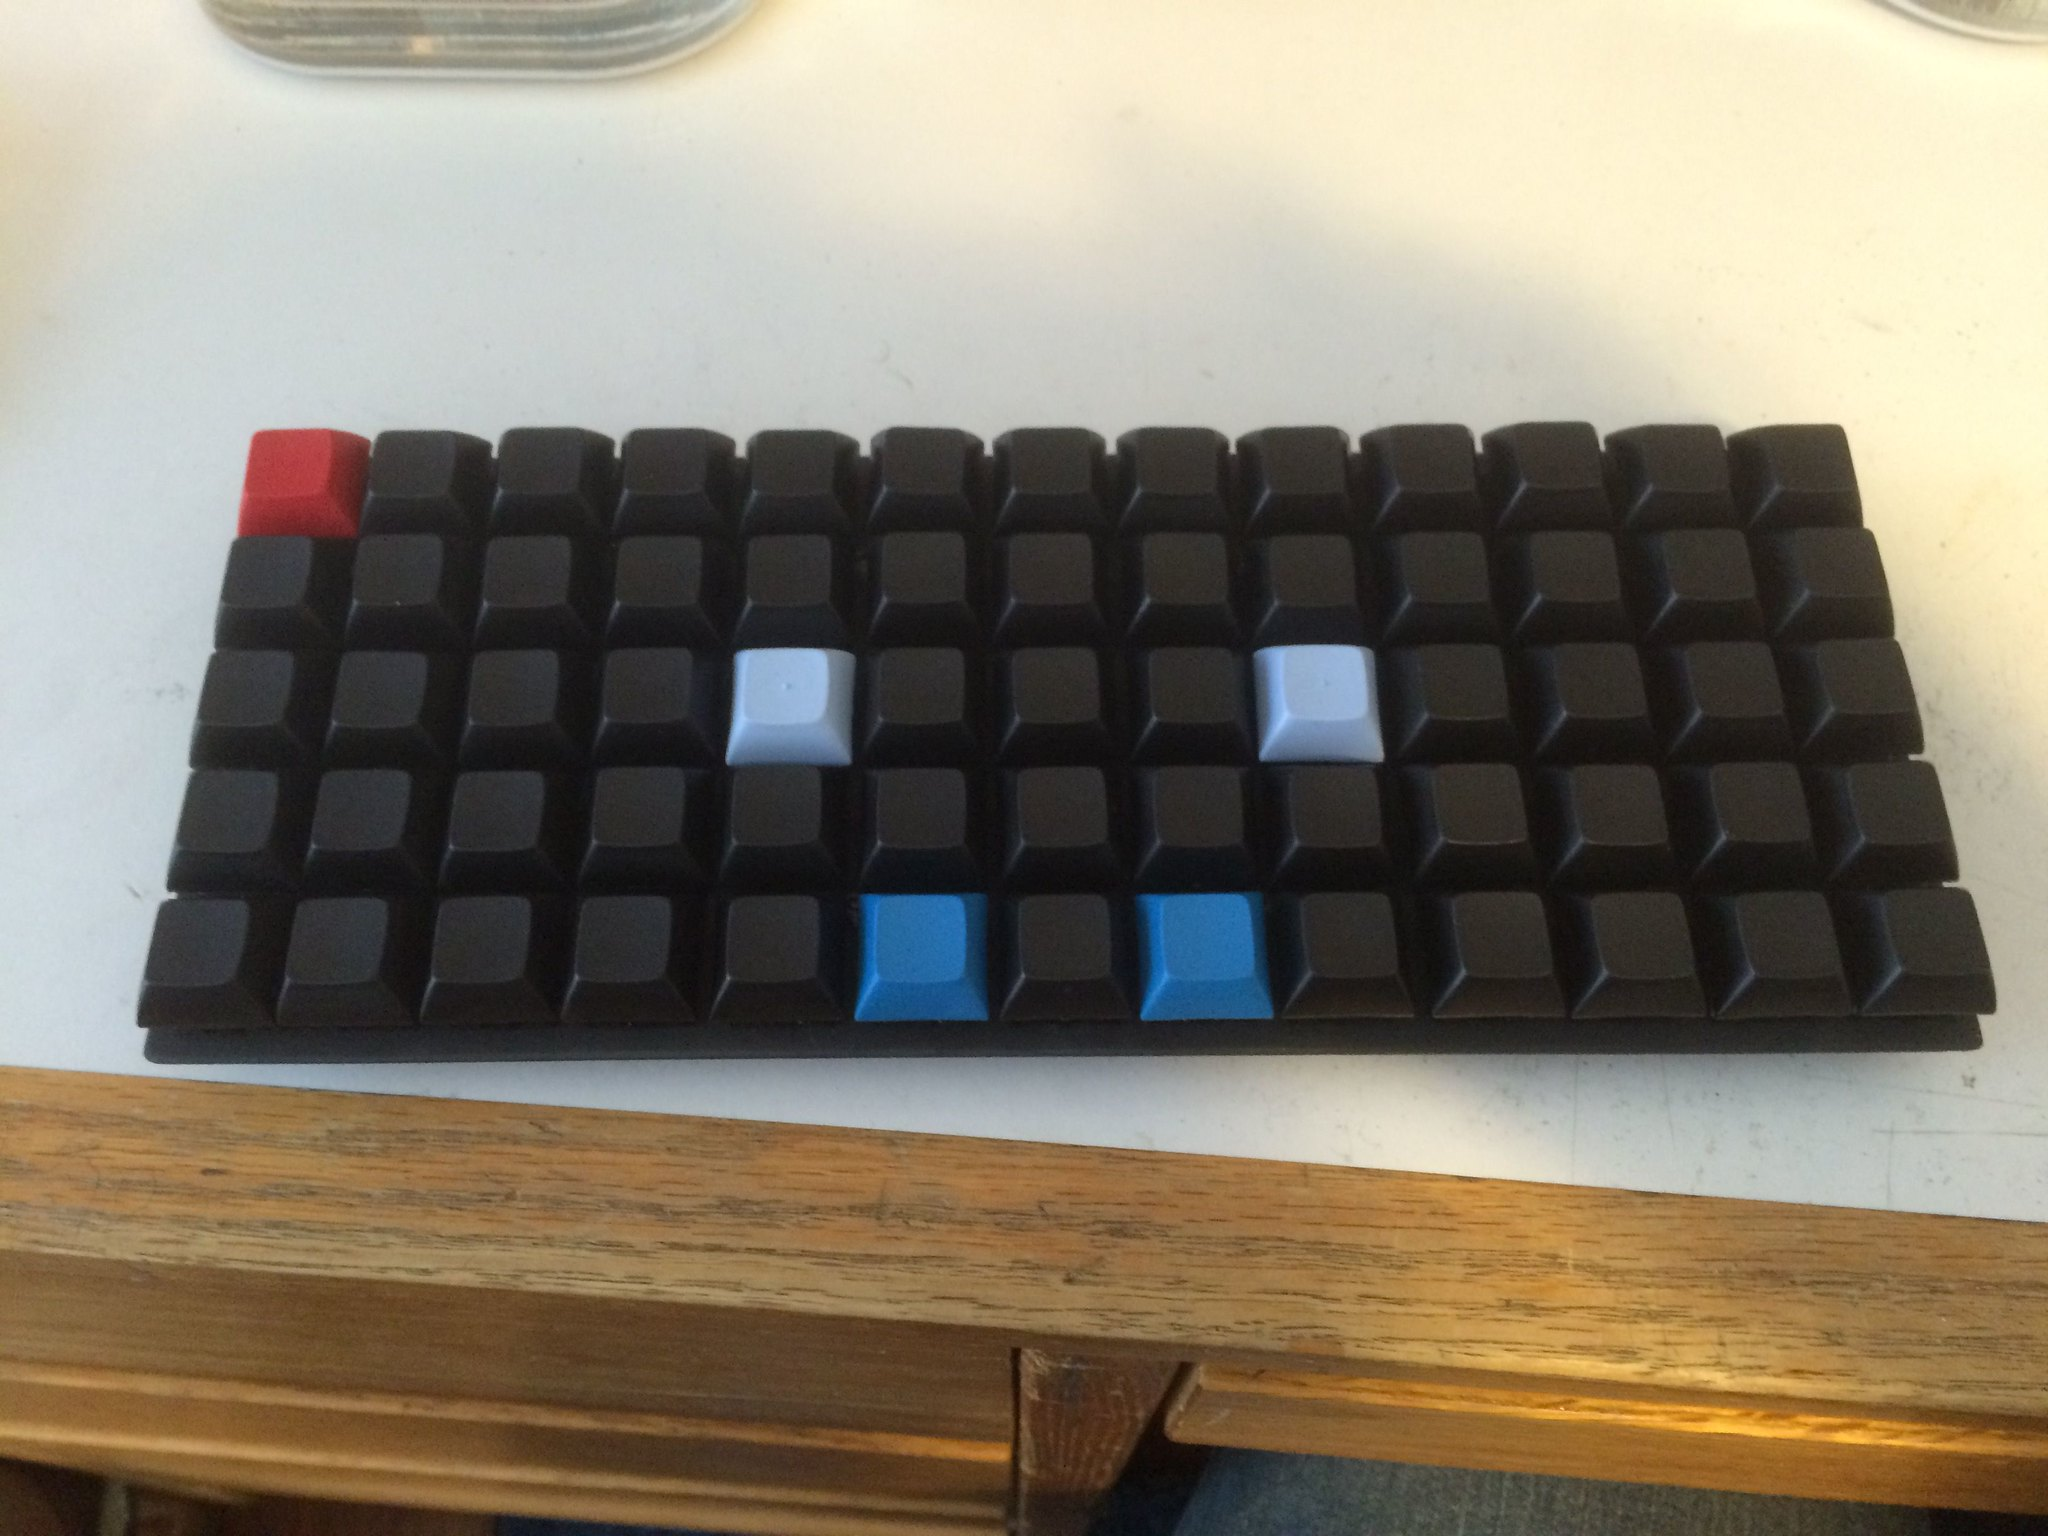 Test fitting switches and keycaps after painting